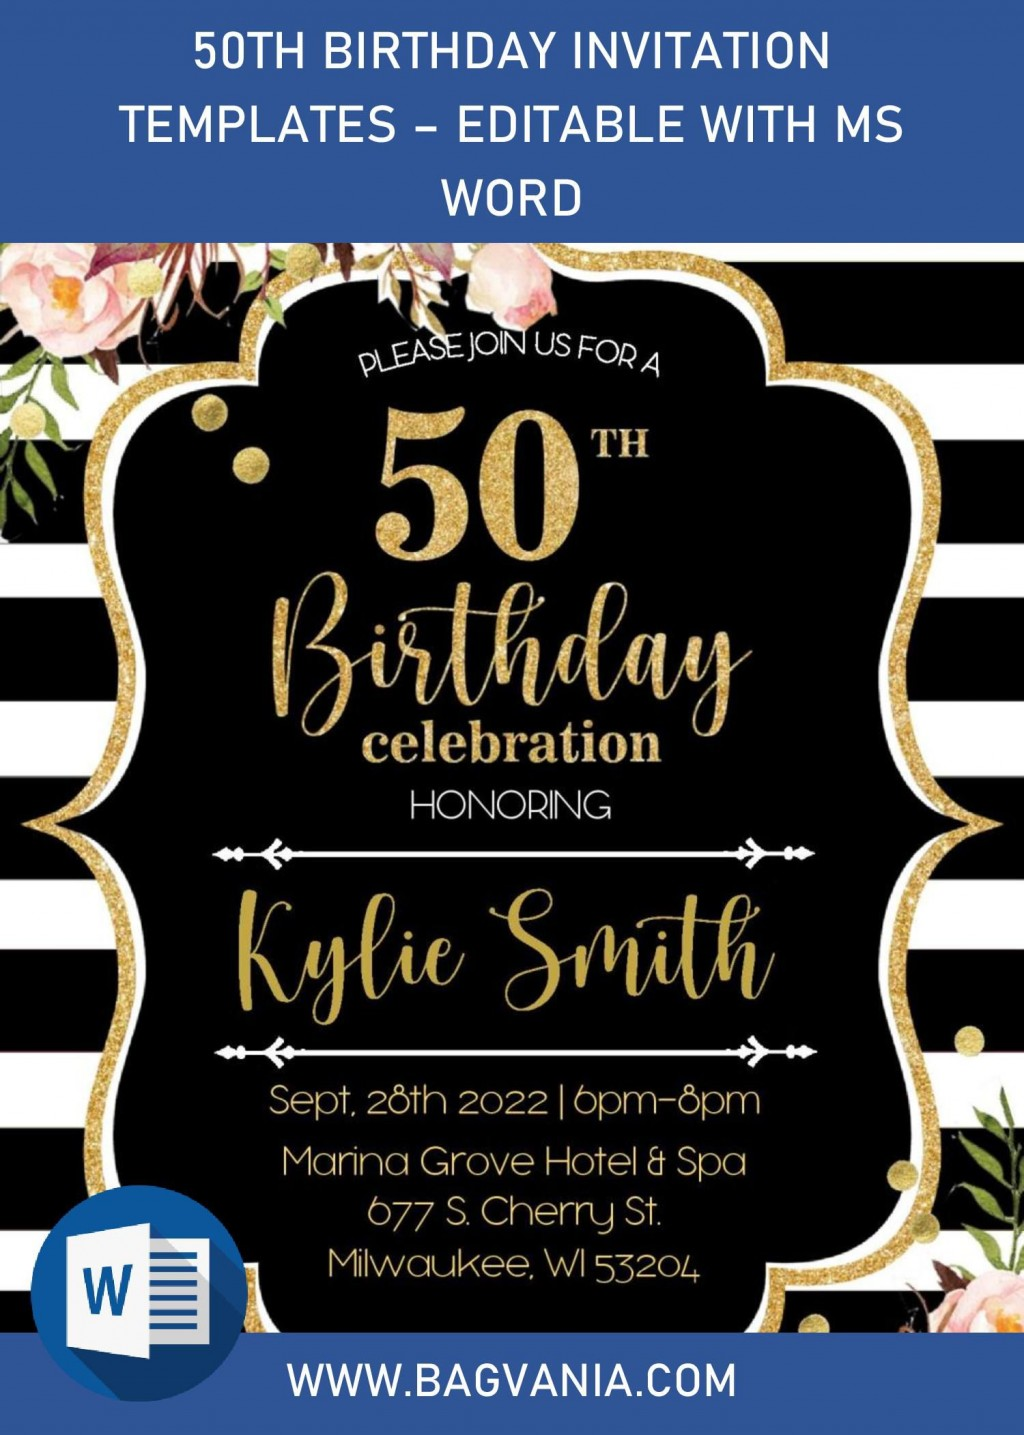 003 Phenomenal Microsoft Word 50th Birthday Invitation Template Highest Quality  Wedding Anniversary EditableLarge